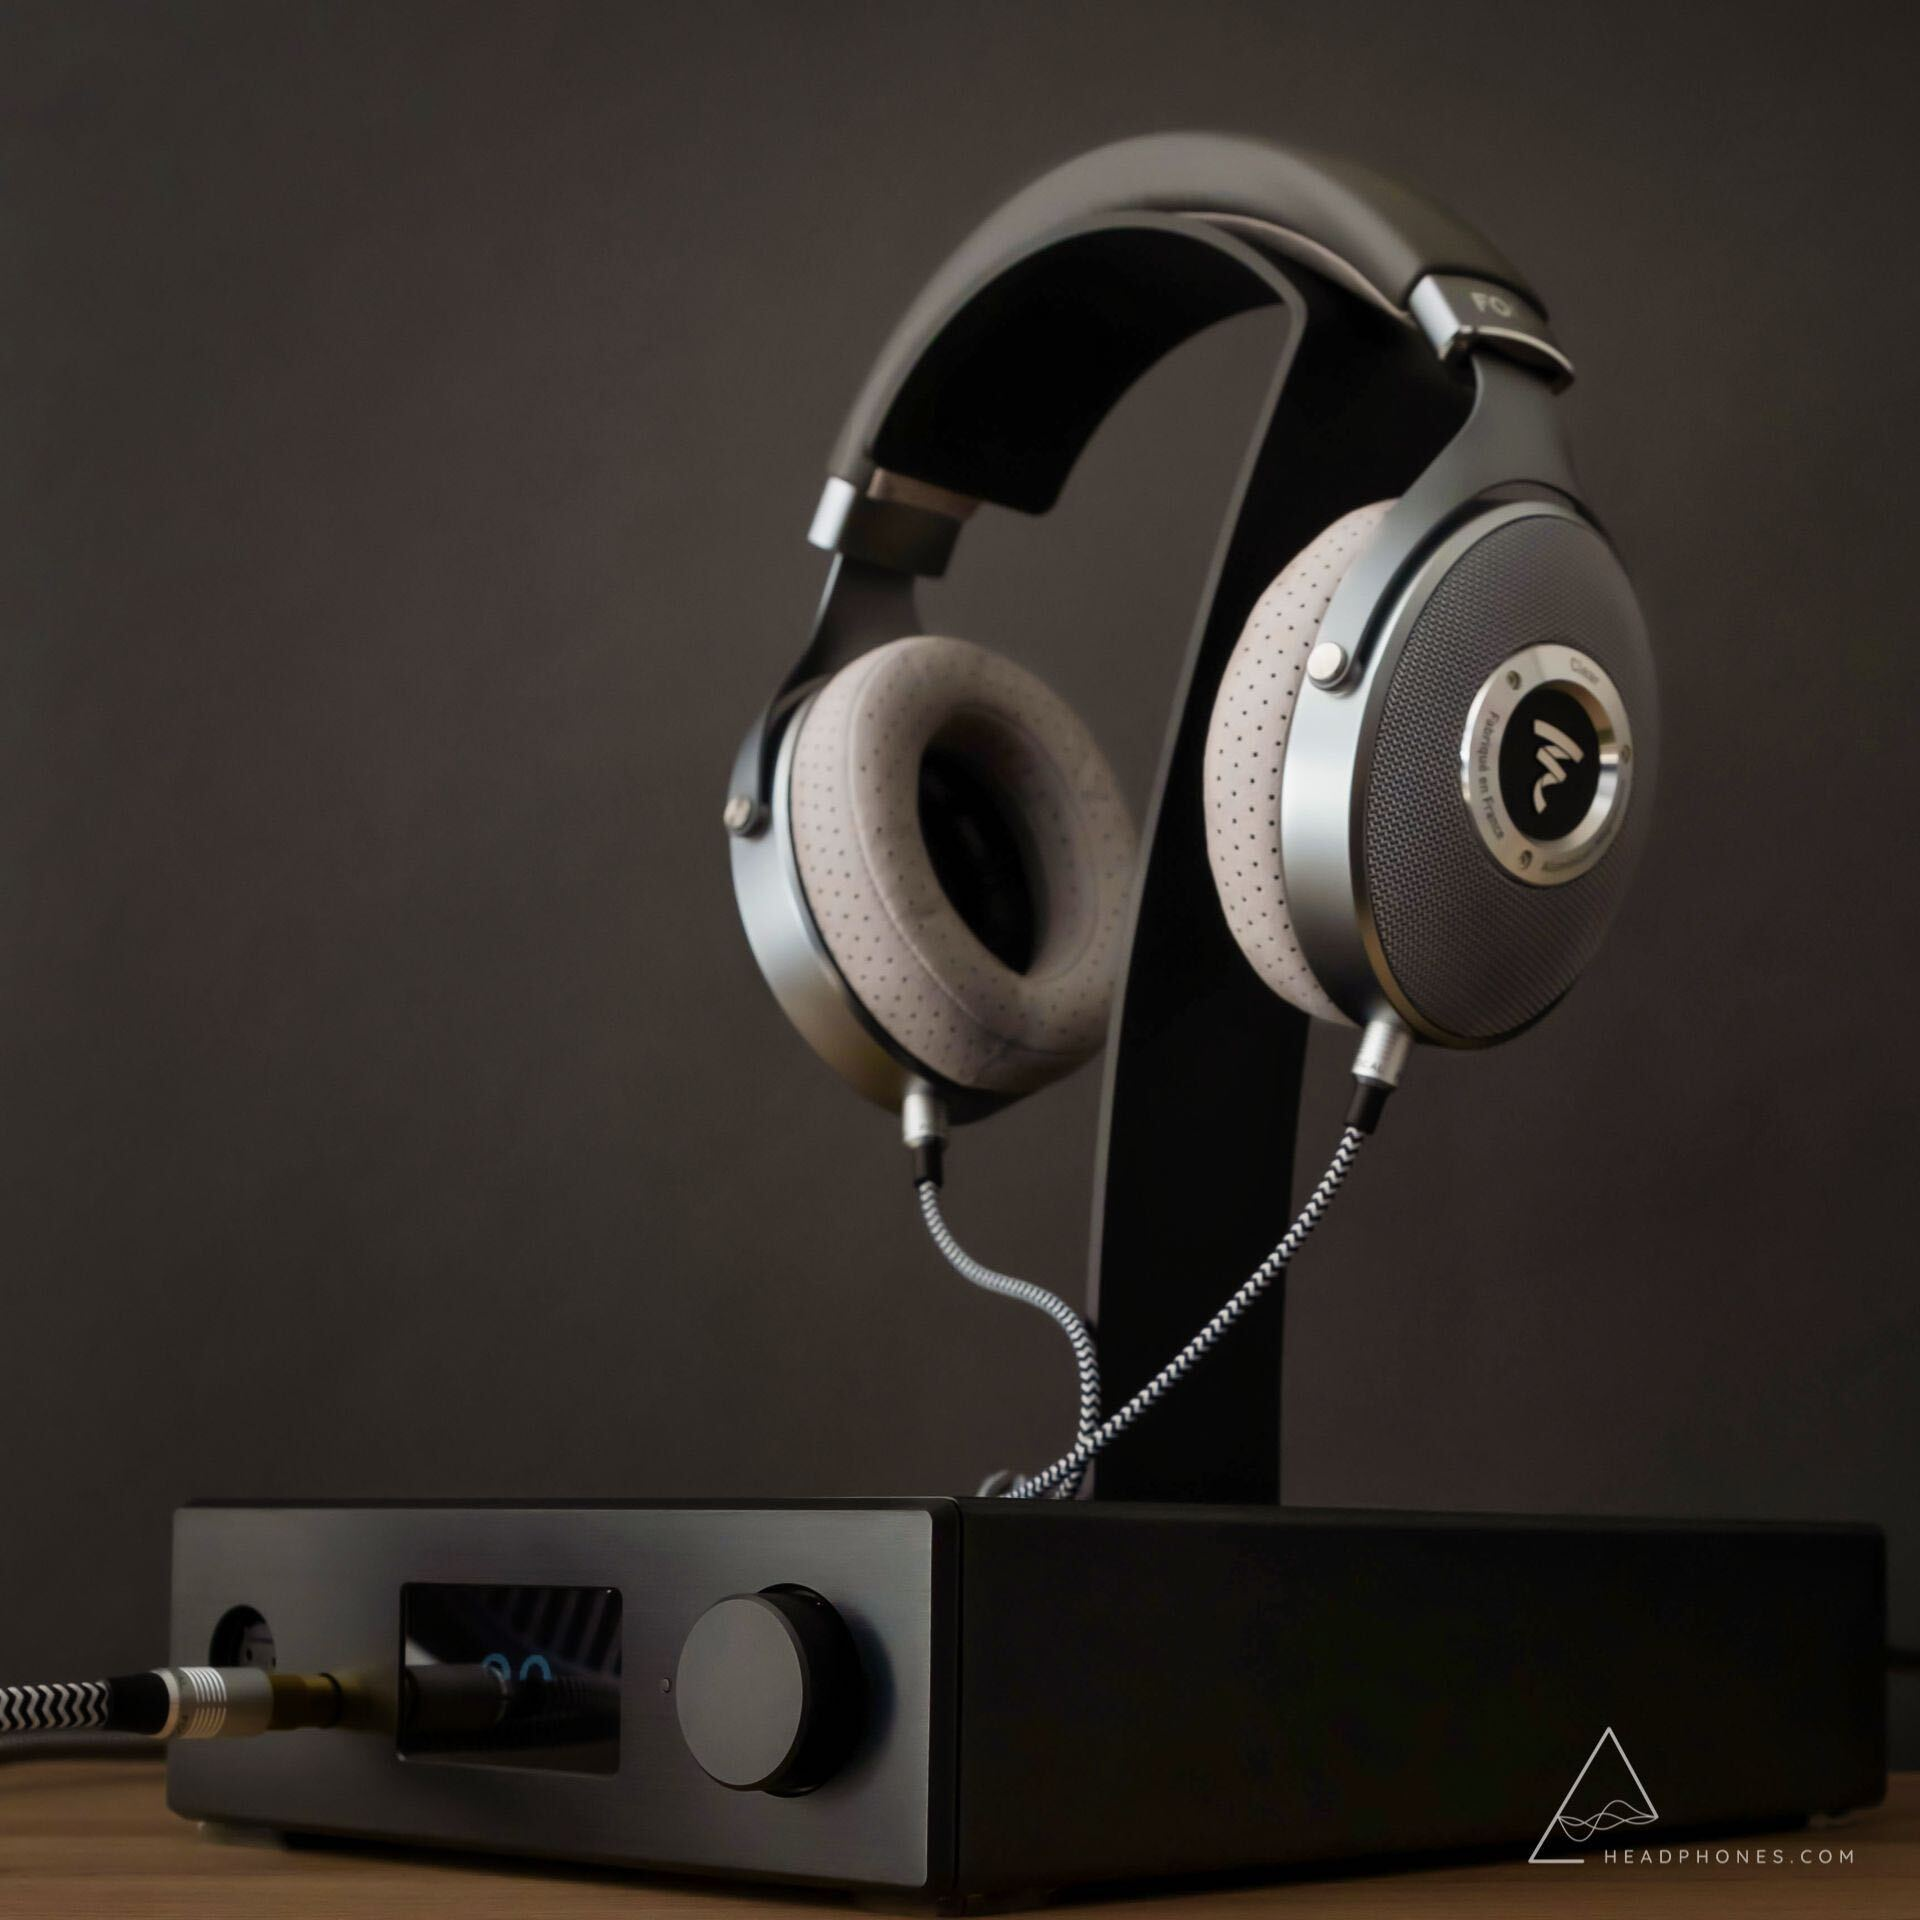 Get $1000 Off the Focal Arche